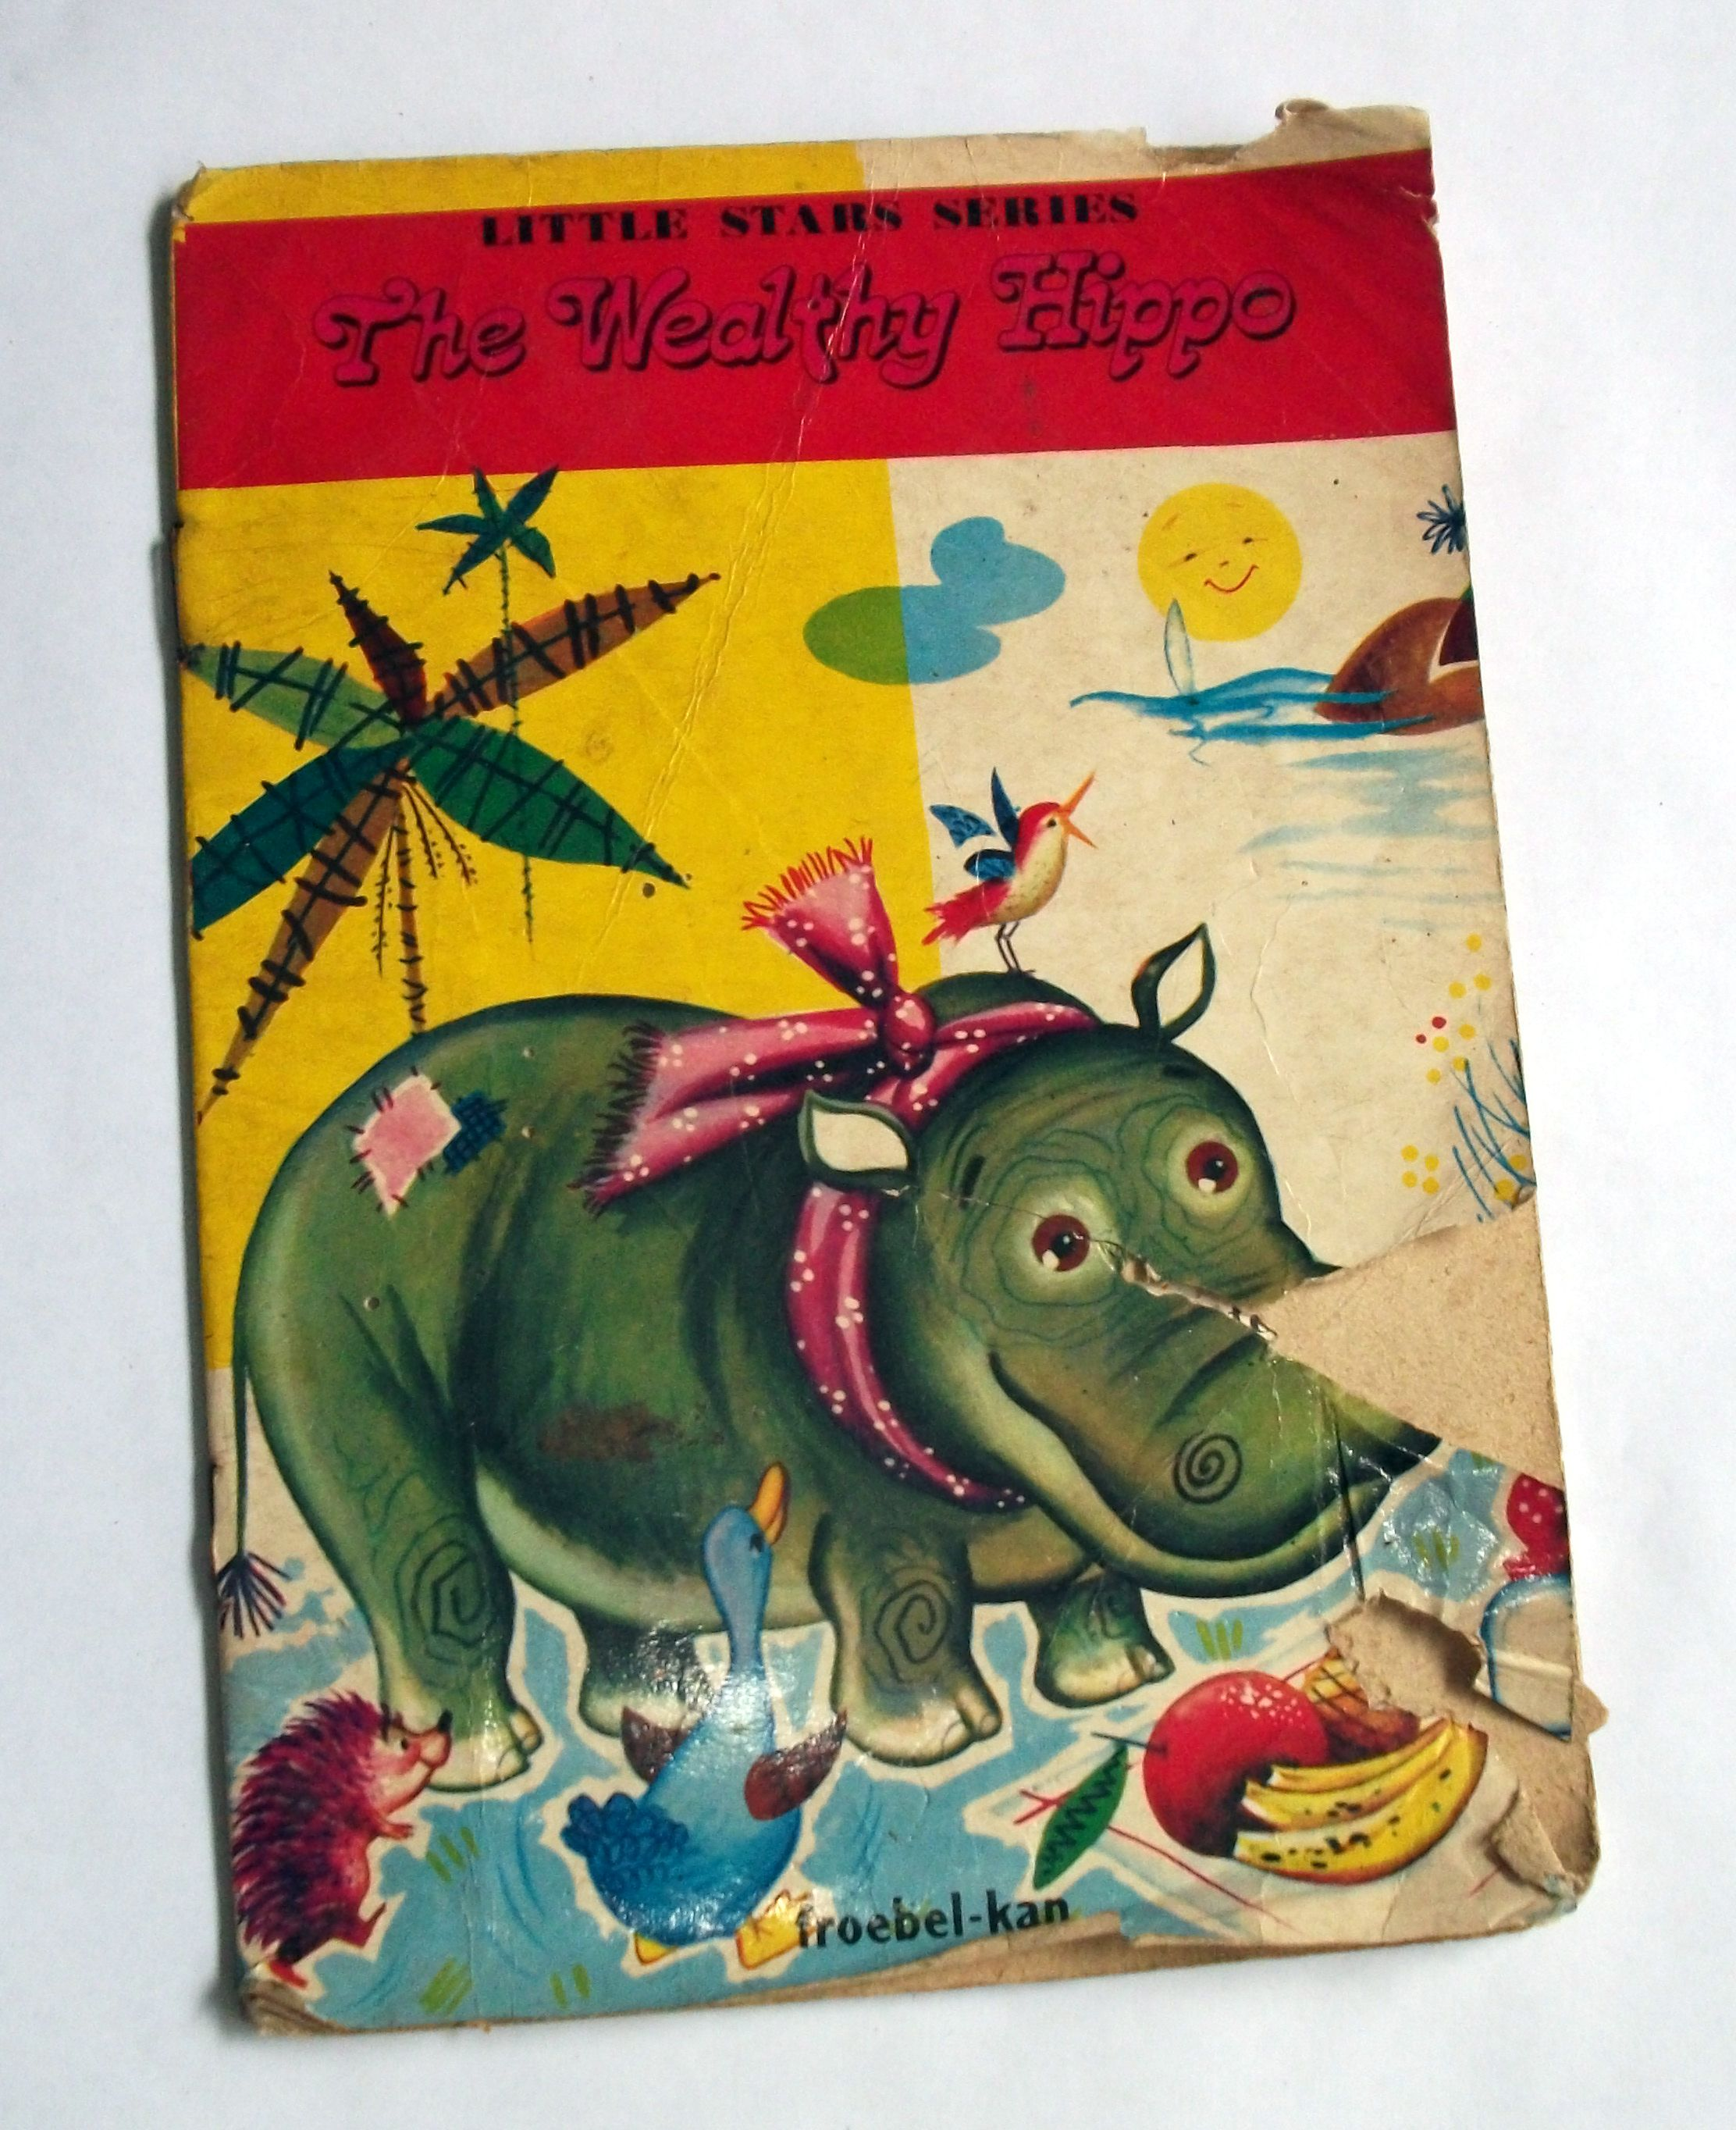 The Wealthy Hippo, probably our earliest book